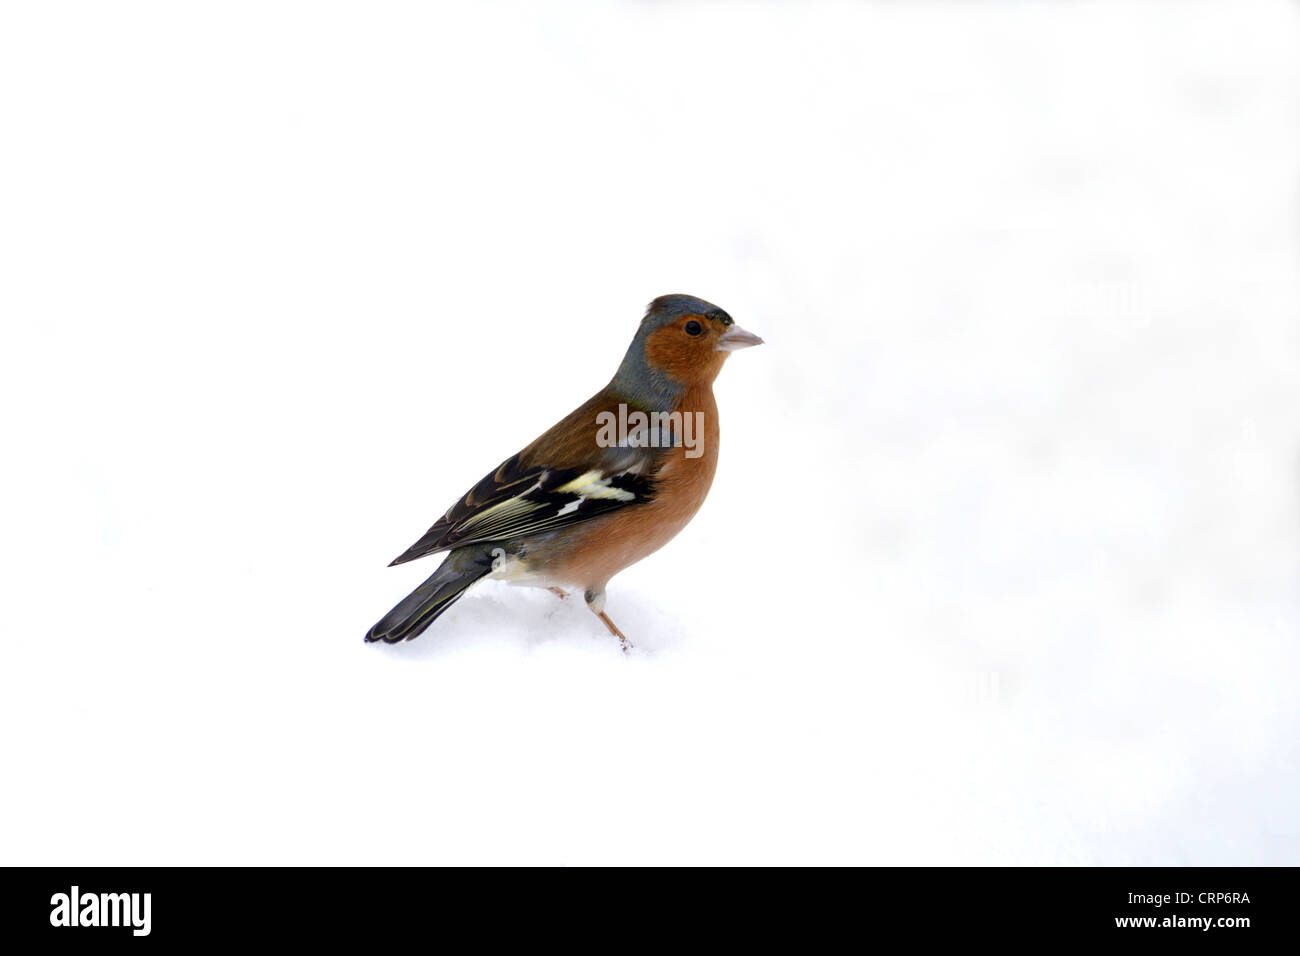 Chaffinch (Fringilla coelebs) adult male, standing on snow, Norfolk, England, february - Stock Image